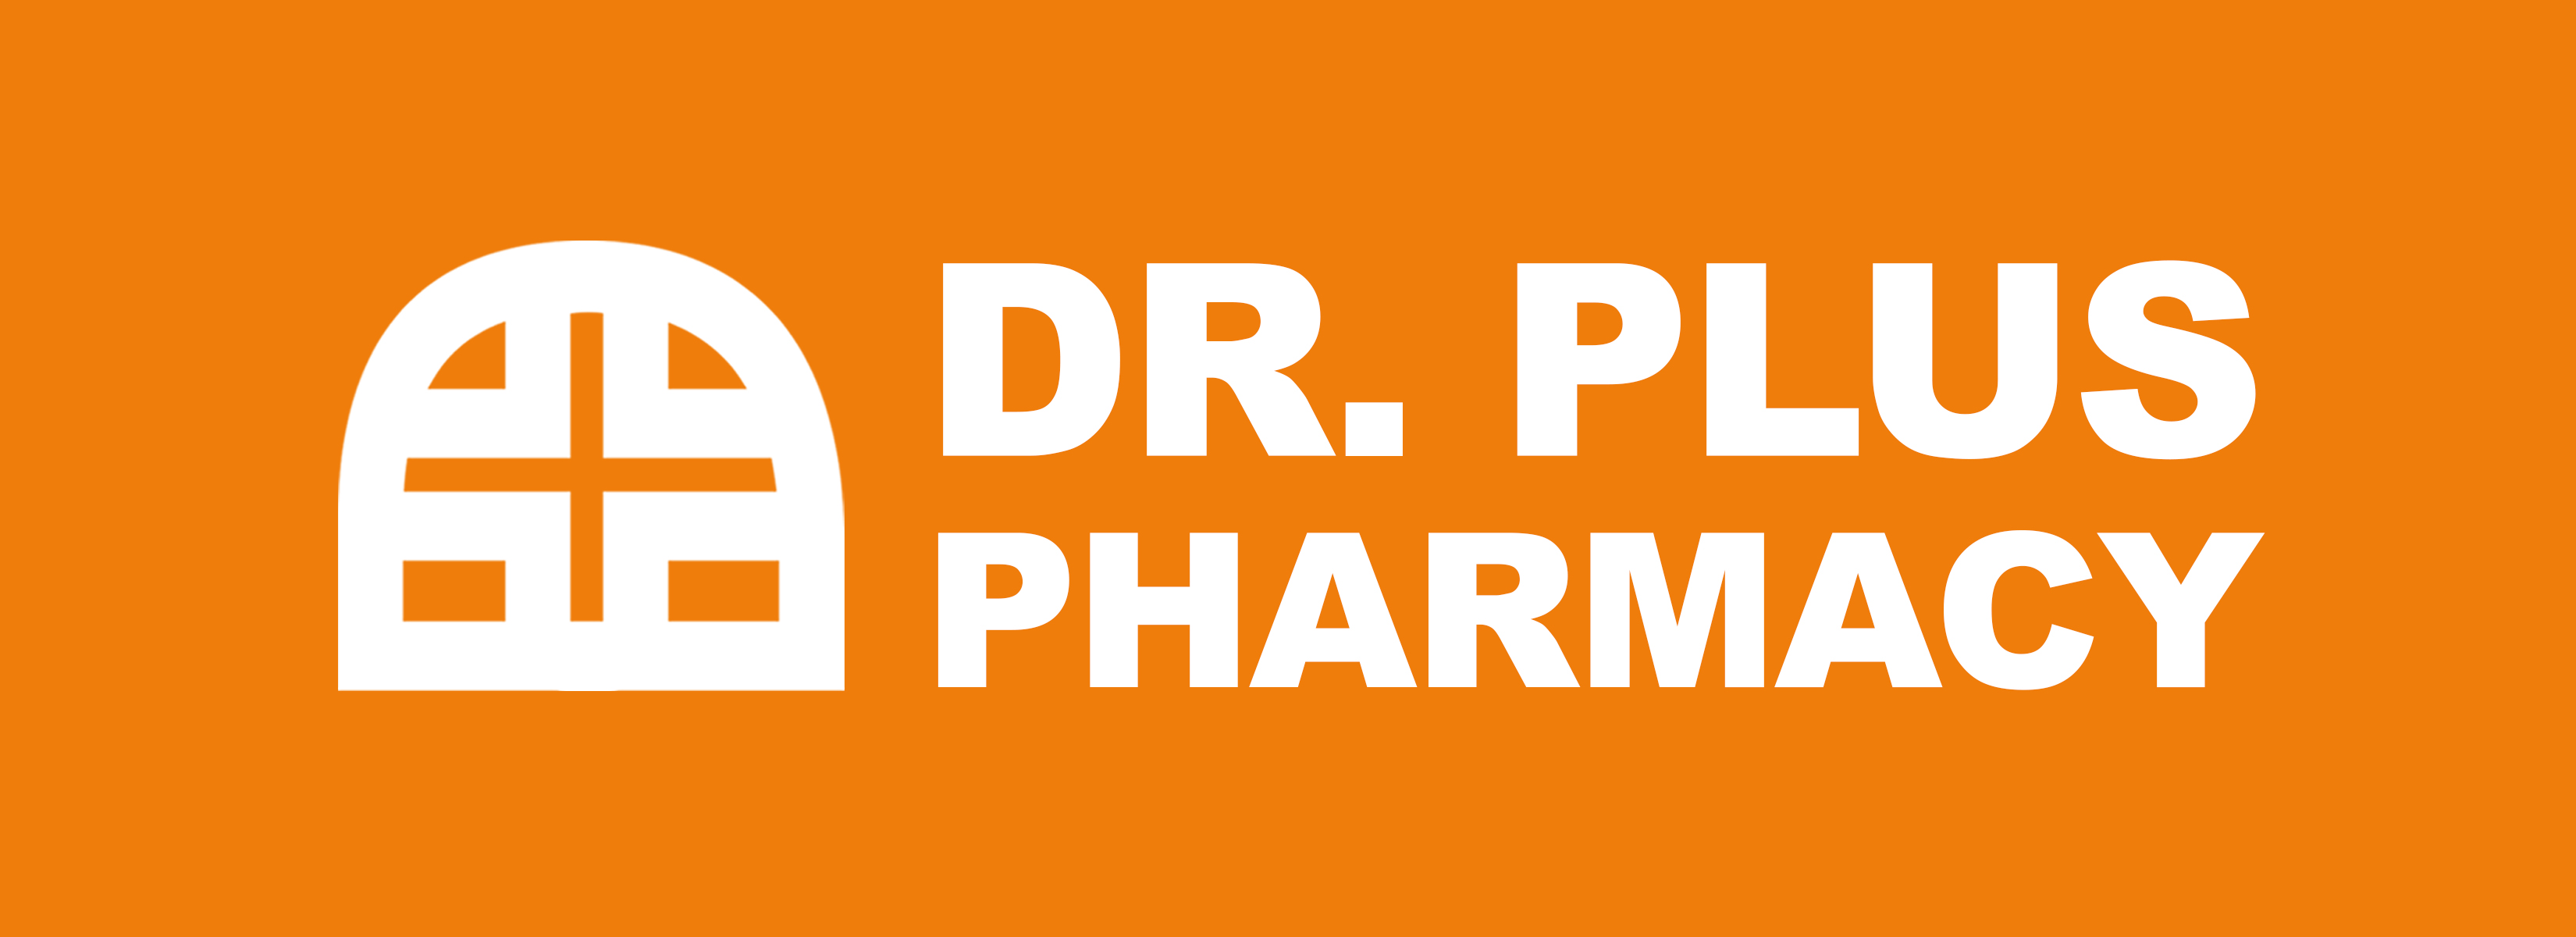 Dr Plus Pharmacy